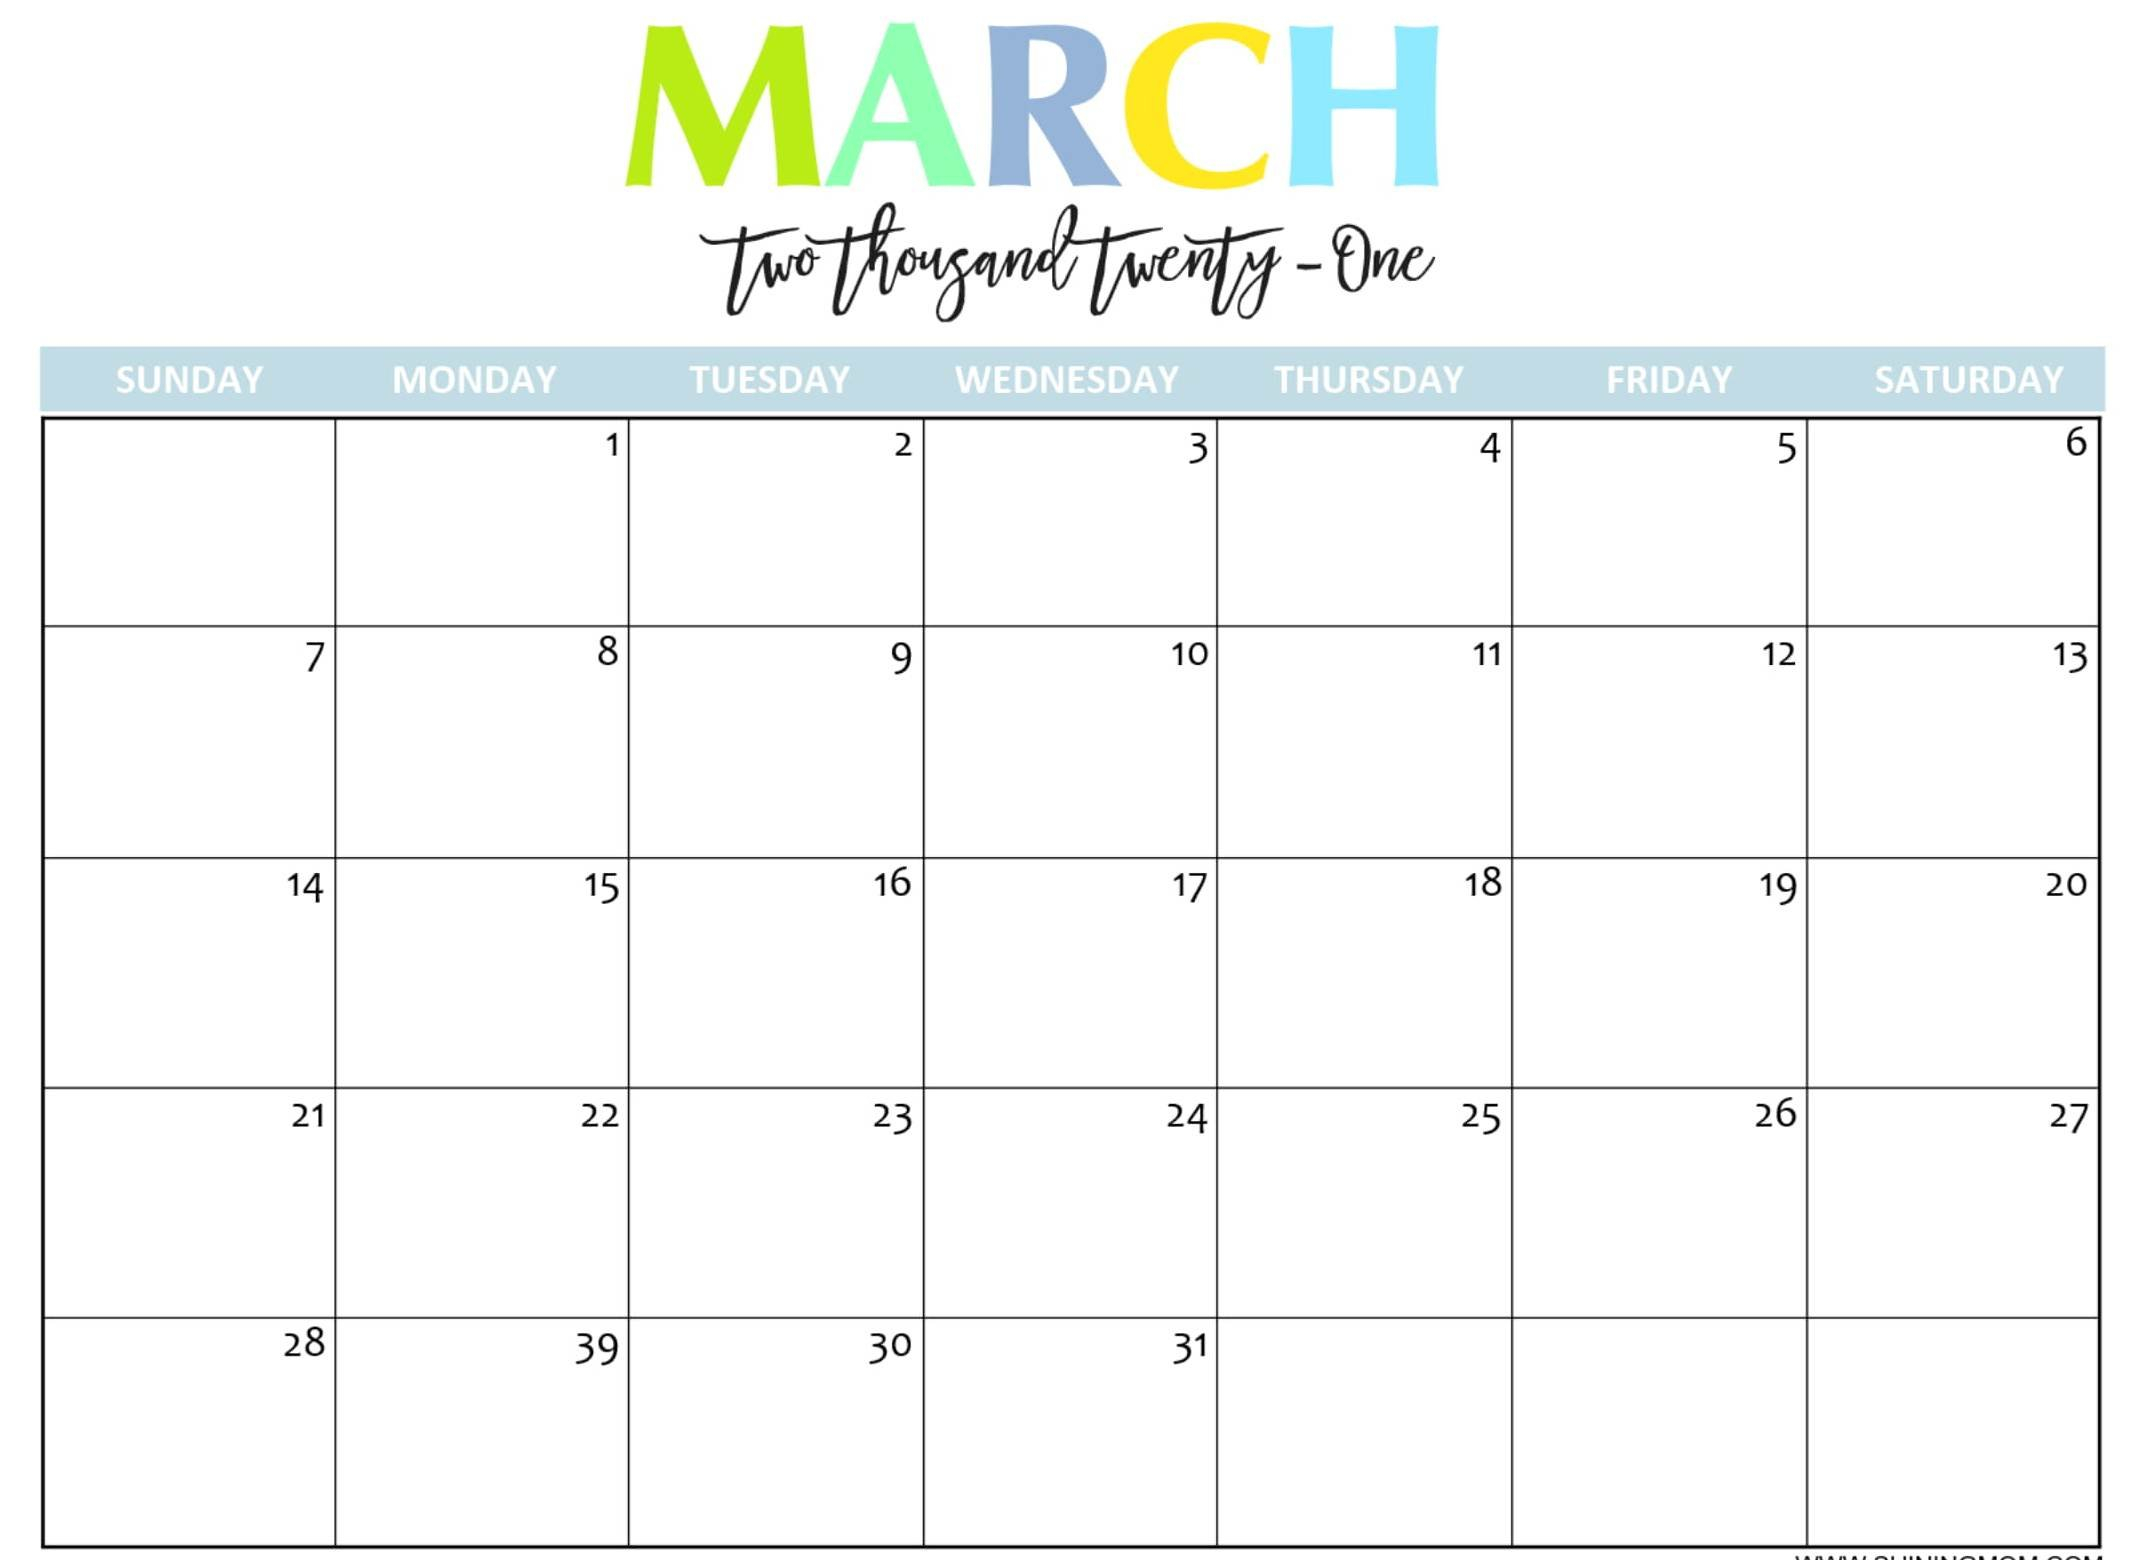 Monthly Calendar For March 2021 Fillable Template - Web Free Weekly Calendar Fillable With Times Starting At 6Am